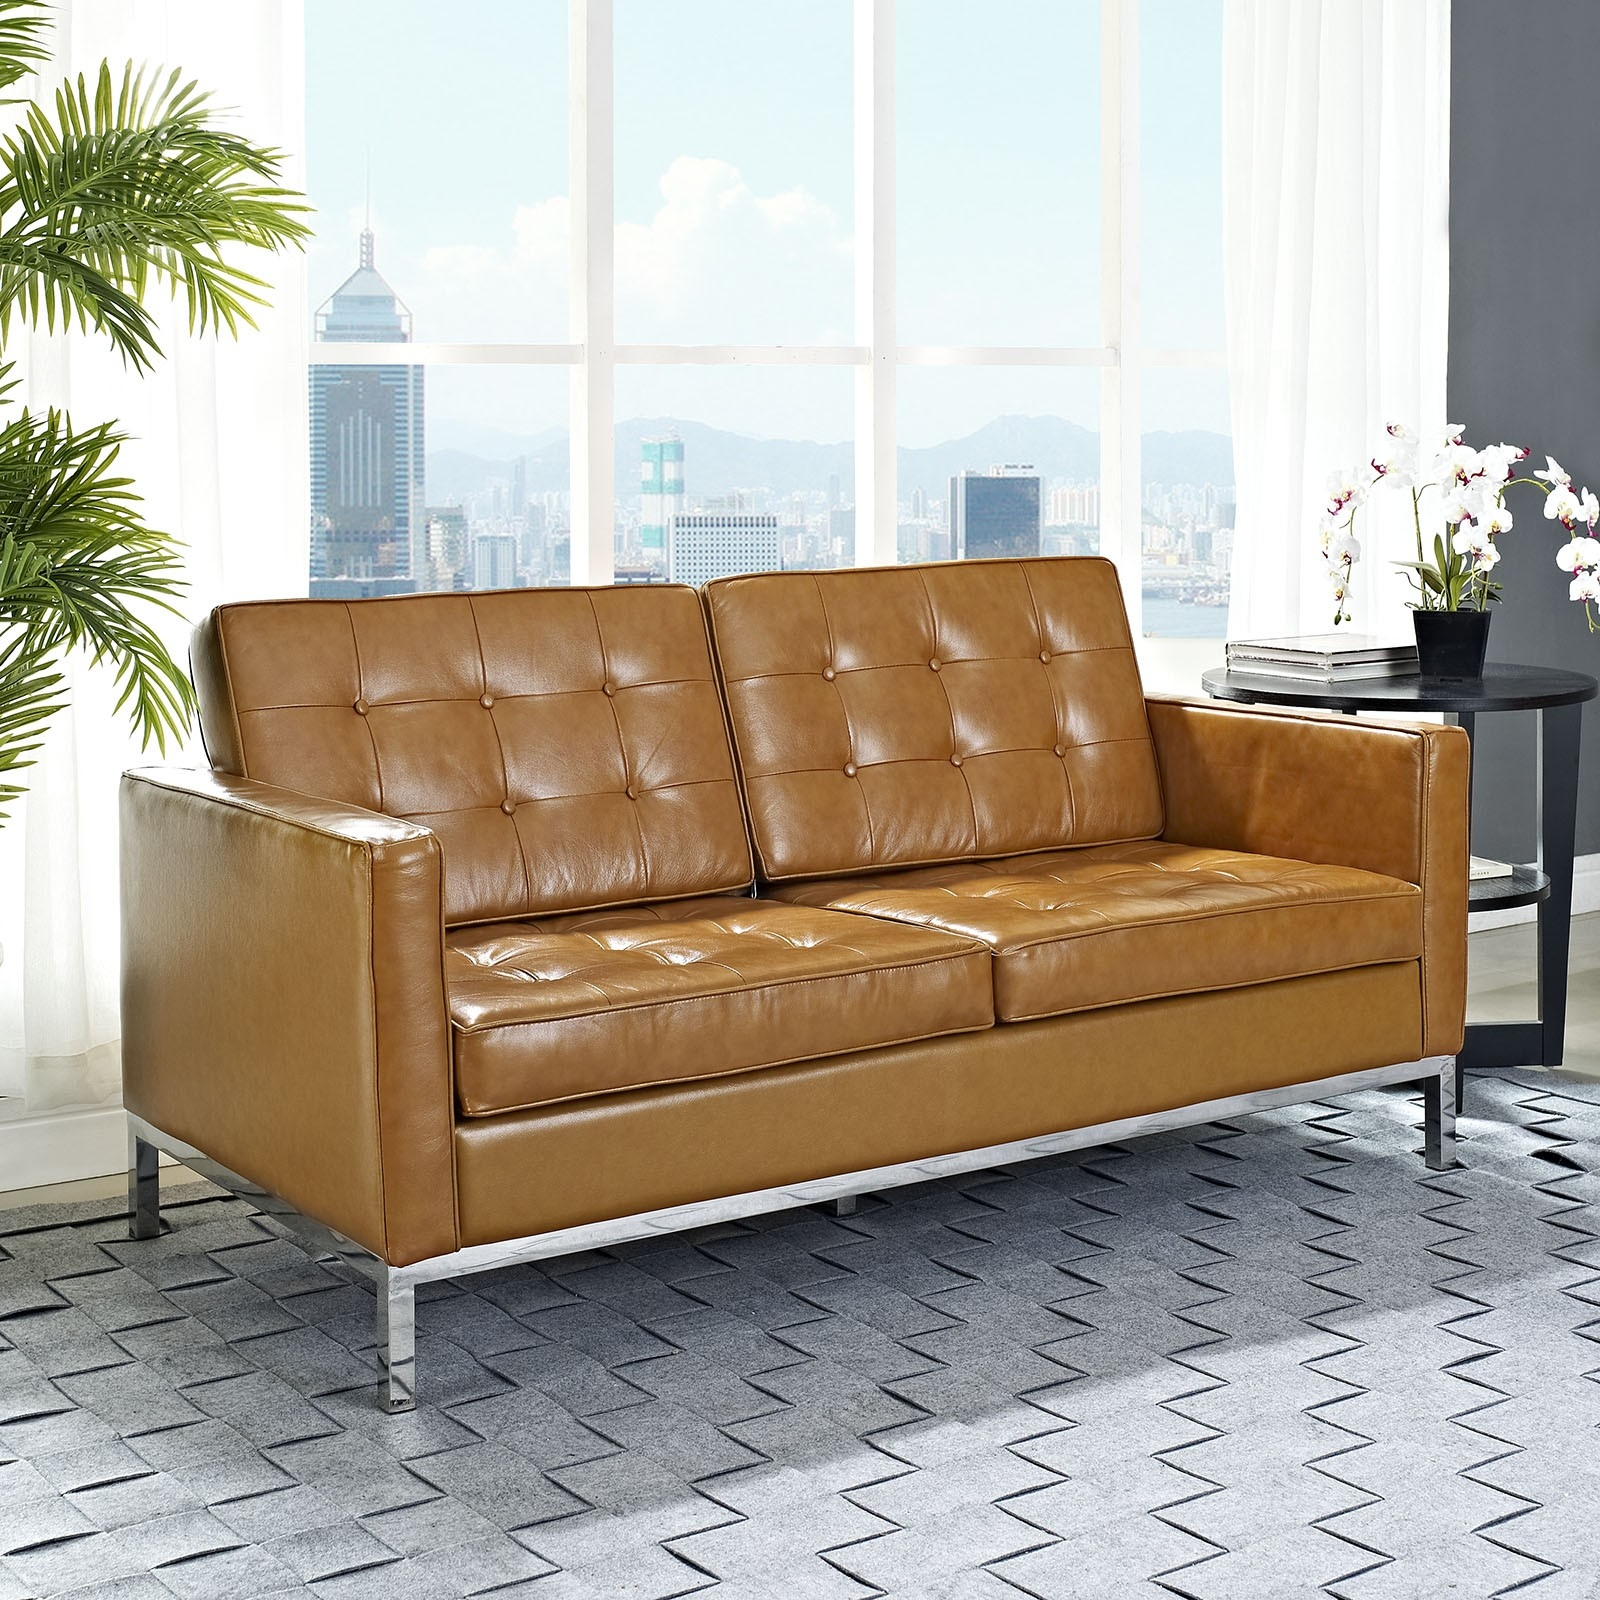 The Florence Statesman Leather Chesterfield Sofa Authentic Throughout Florence Leather Sofas (Image 15 of 15)